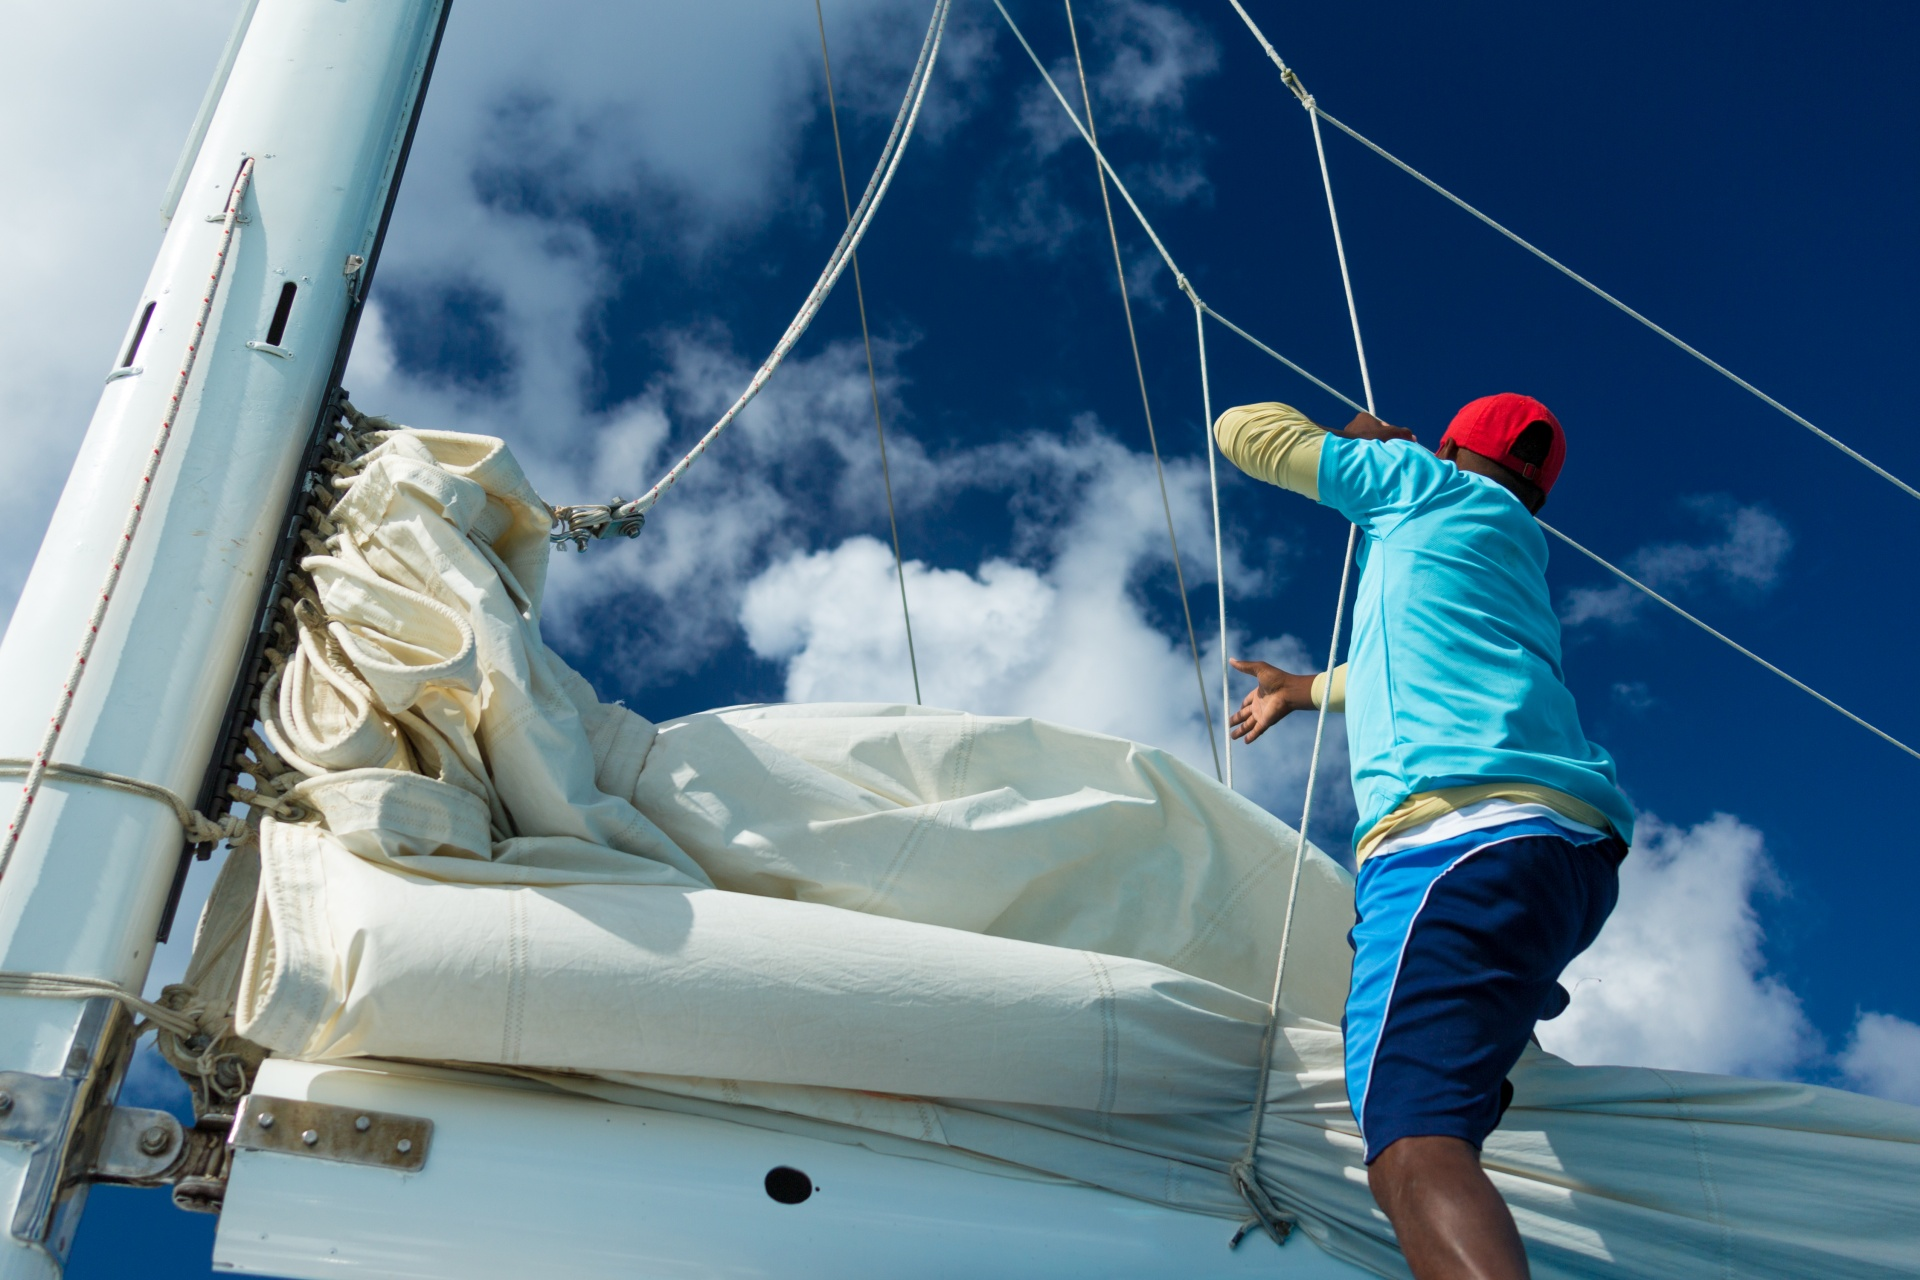 hoisting the sail 1583837283F2D